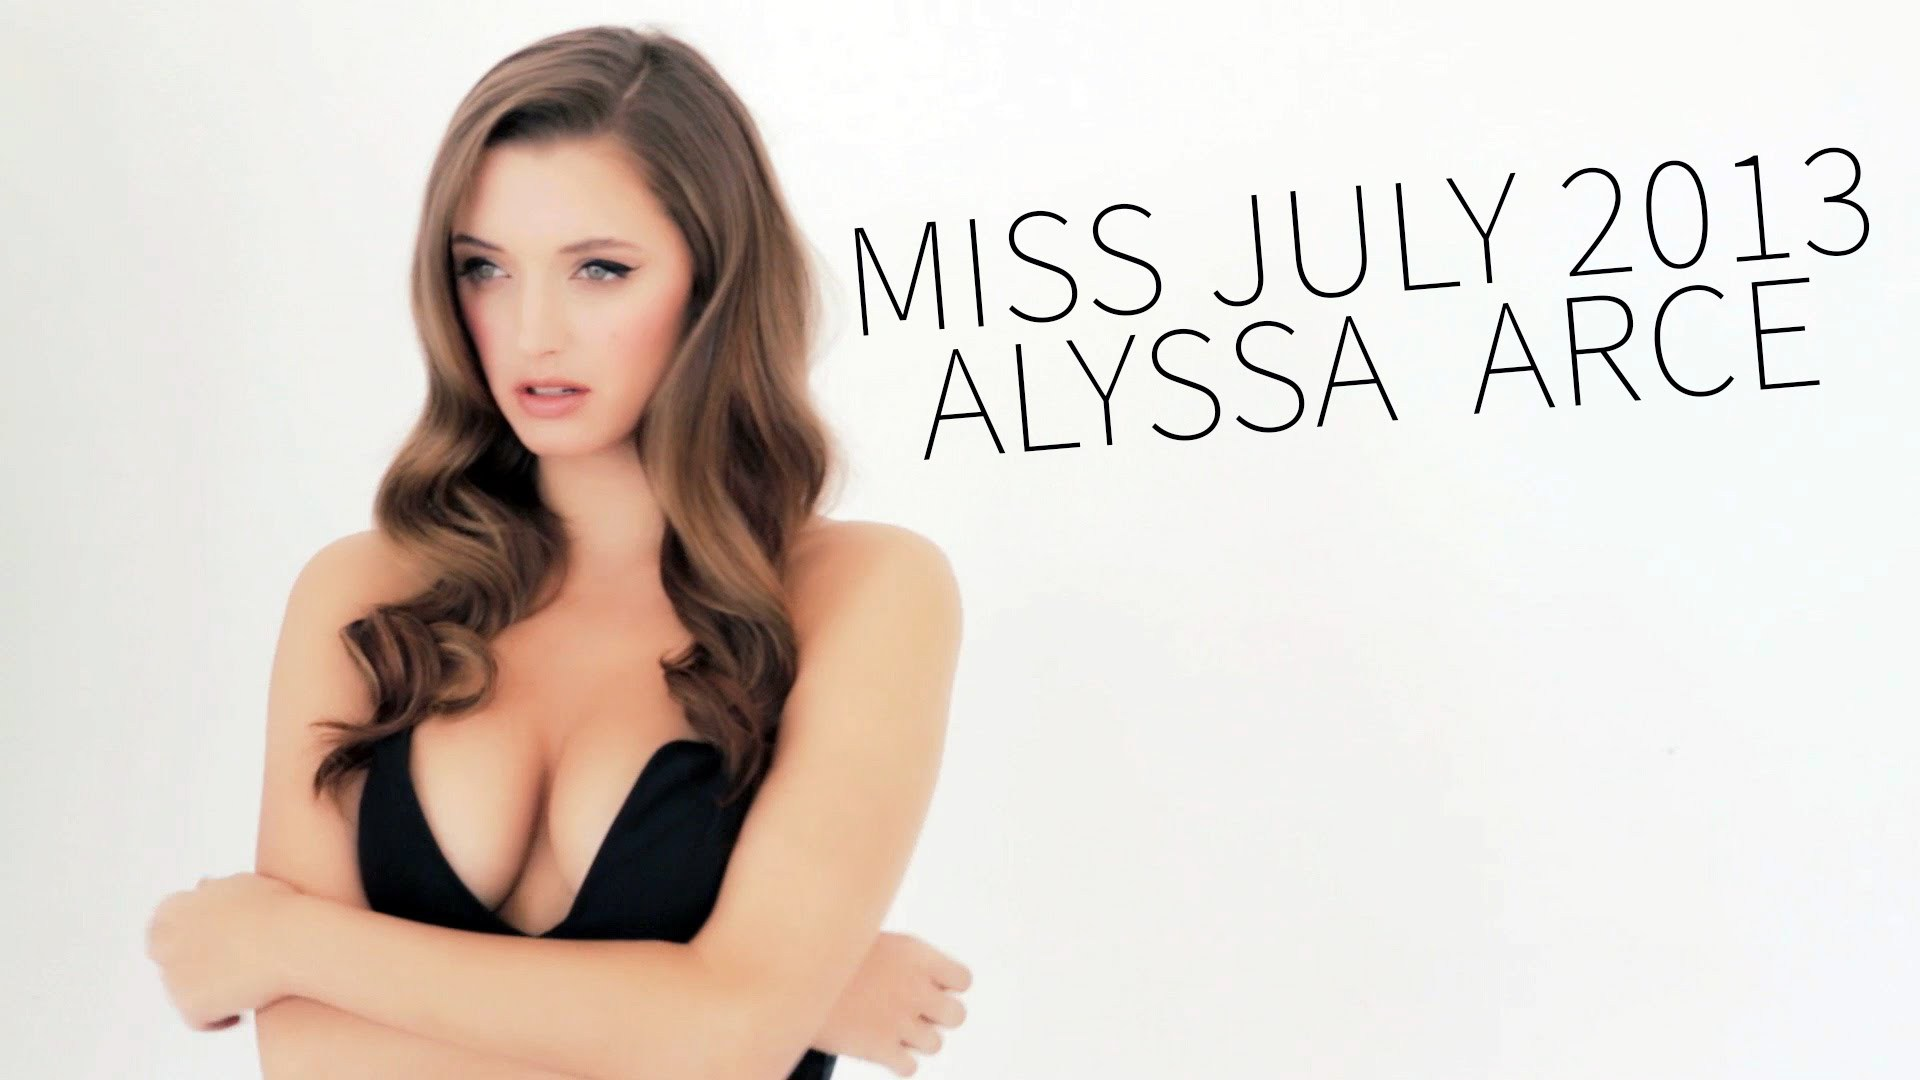 Alyssa Arce Movies alyssa arce wallpapers images photos pictures backgrounds